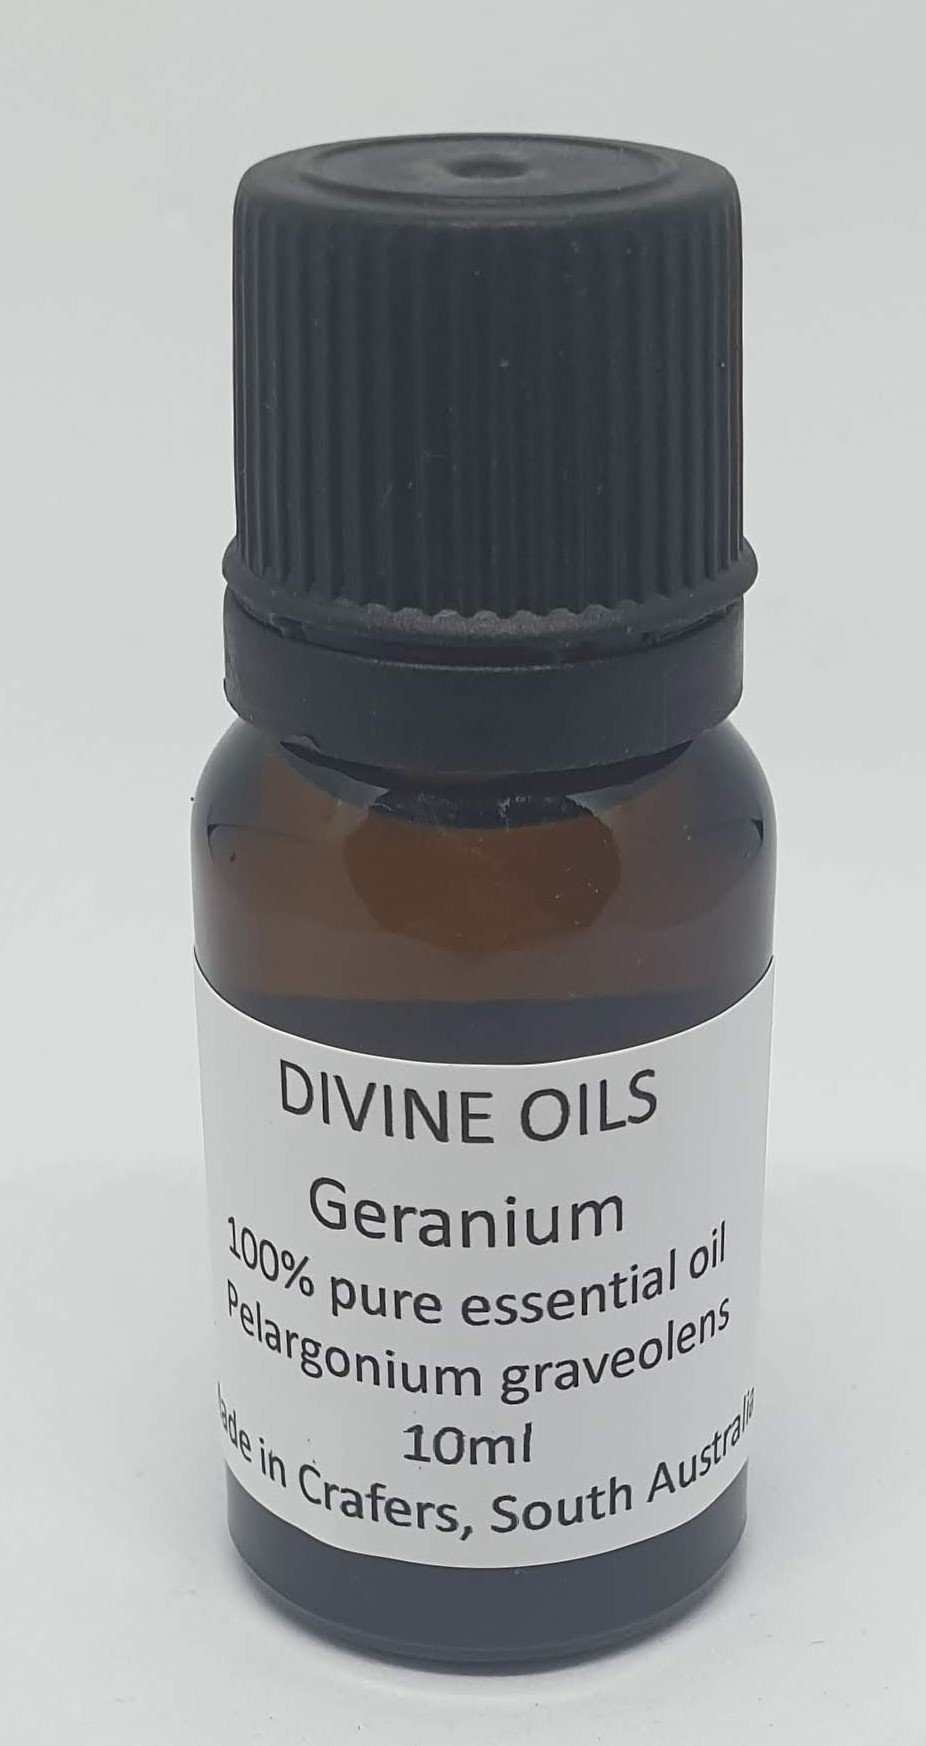 Geranium 100% Essential Oil 10ml - Divine Oils-Bath & Body-Atelier Crafers